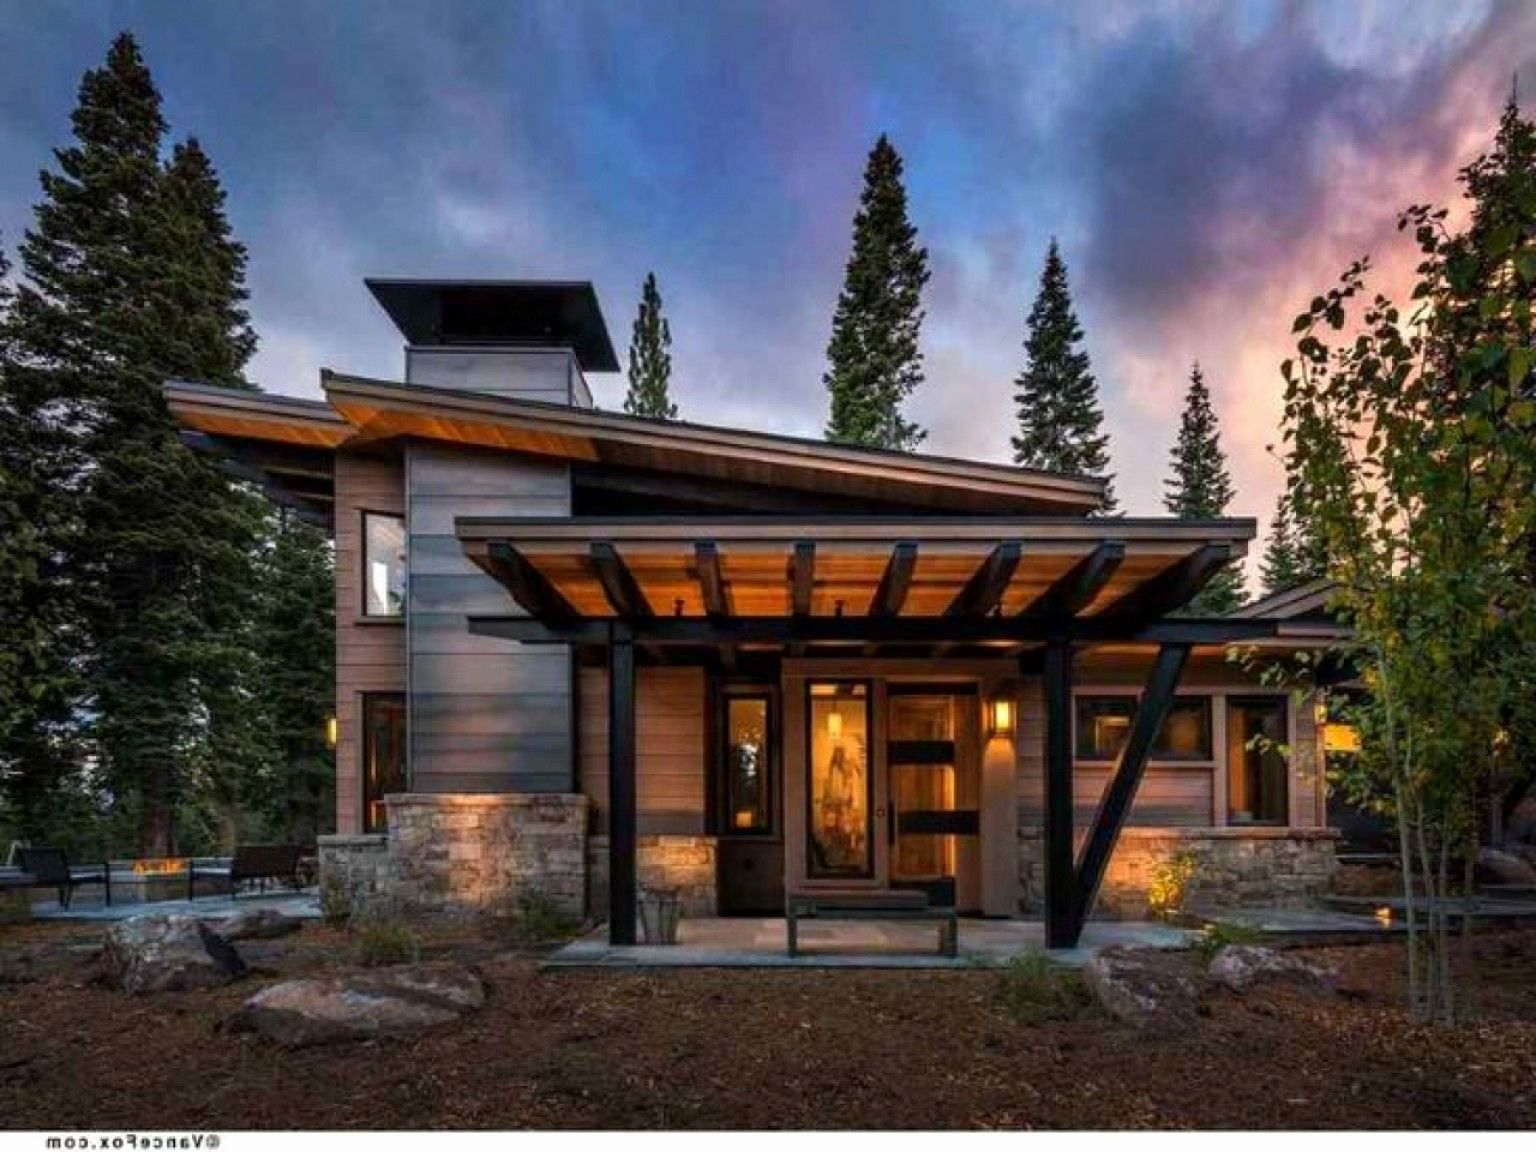 Pin by Justin Graber on House ideas   Mountain house plans ...